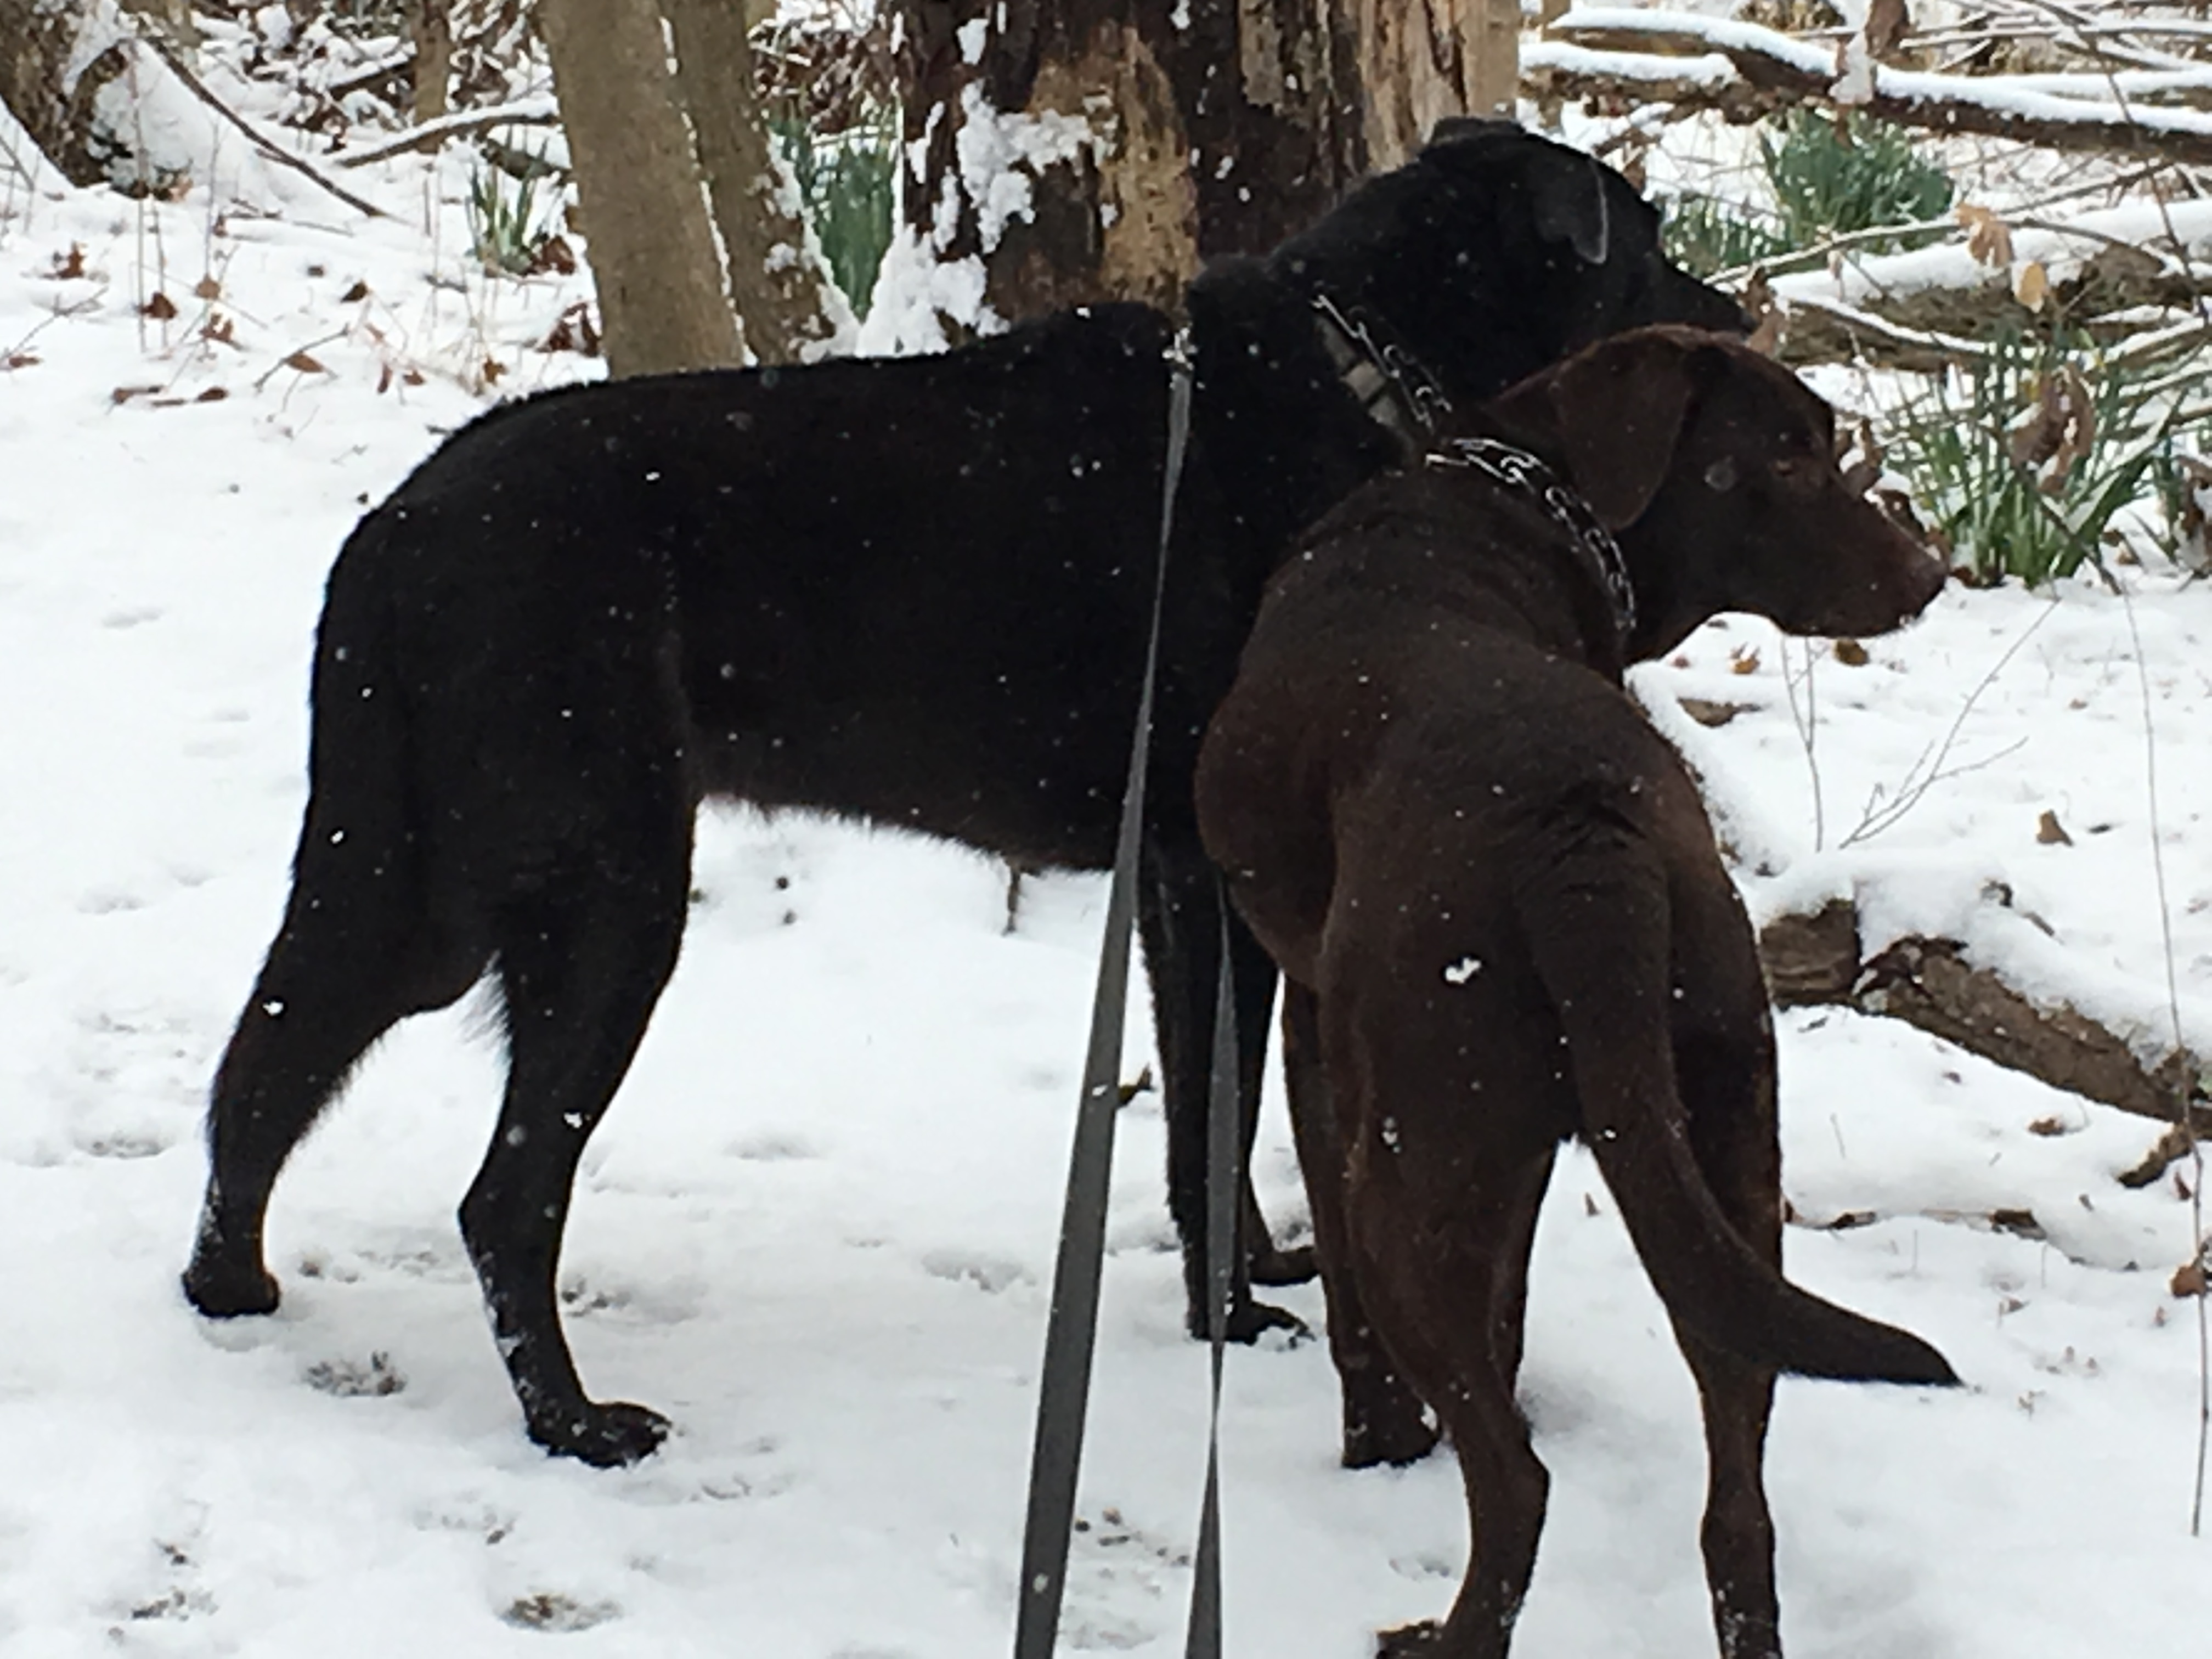 Two leashed labradors stand in the snow looking off the side of a trail.